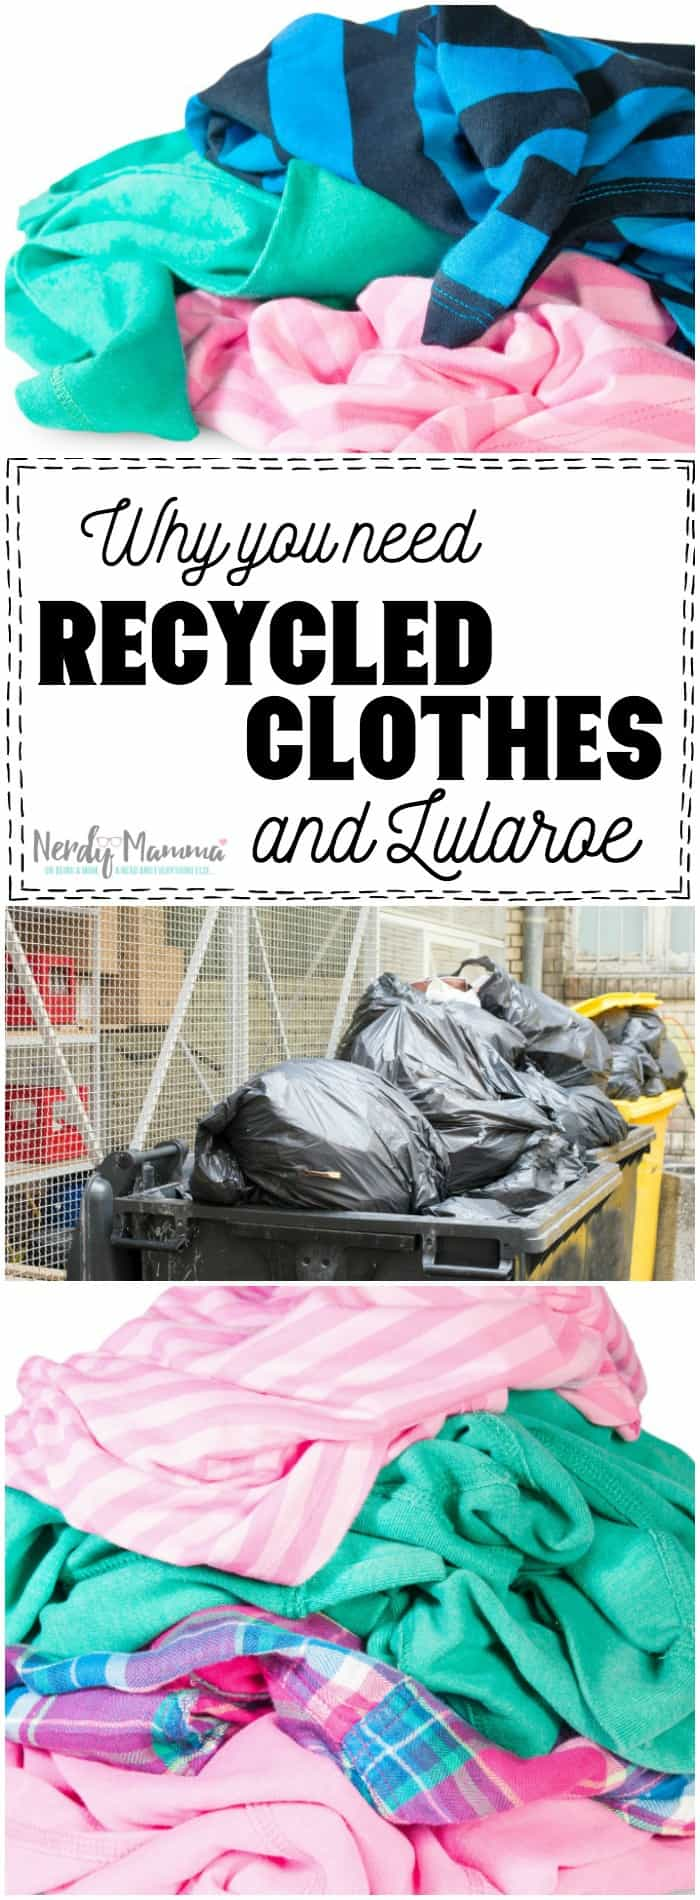 this-is-great-i-love-these-thoughts-on-recycled-clothes-so-smart